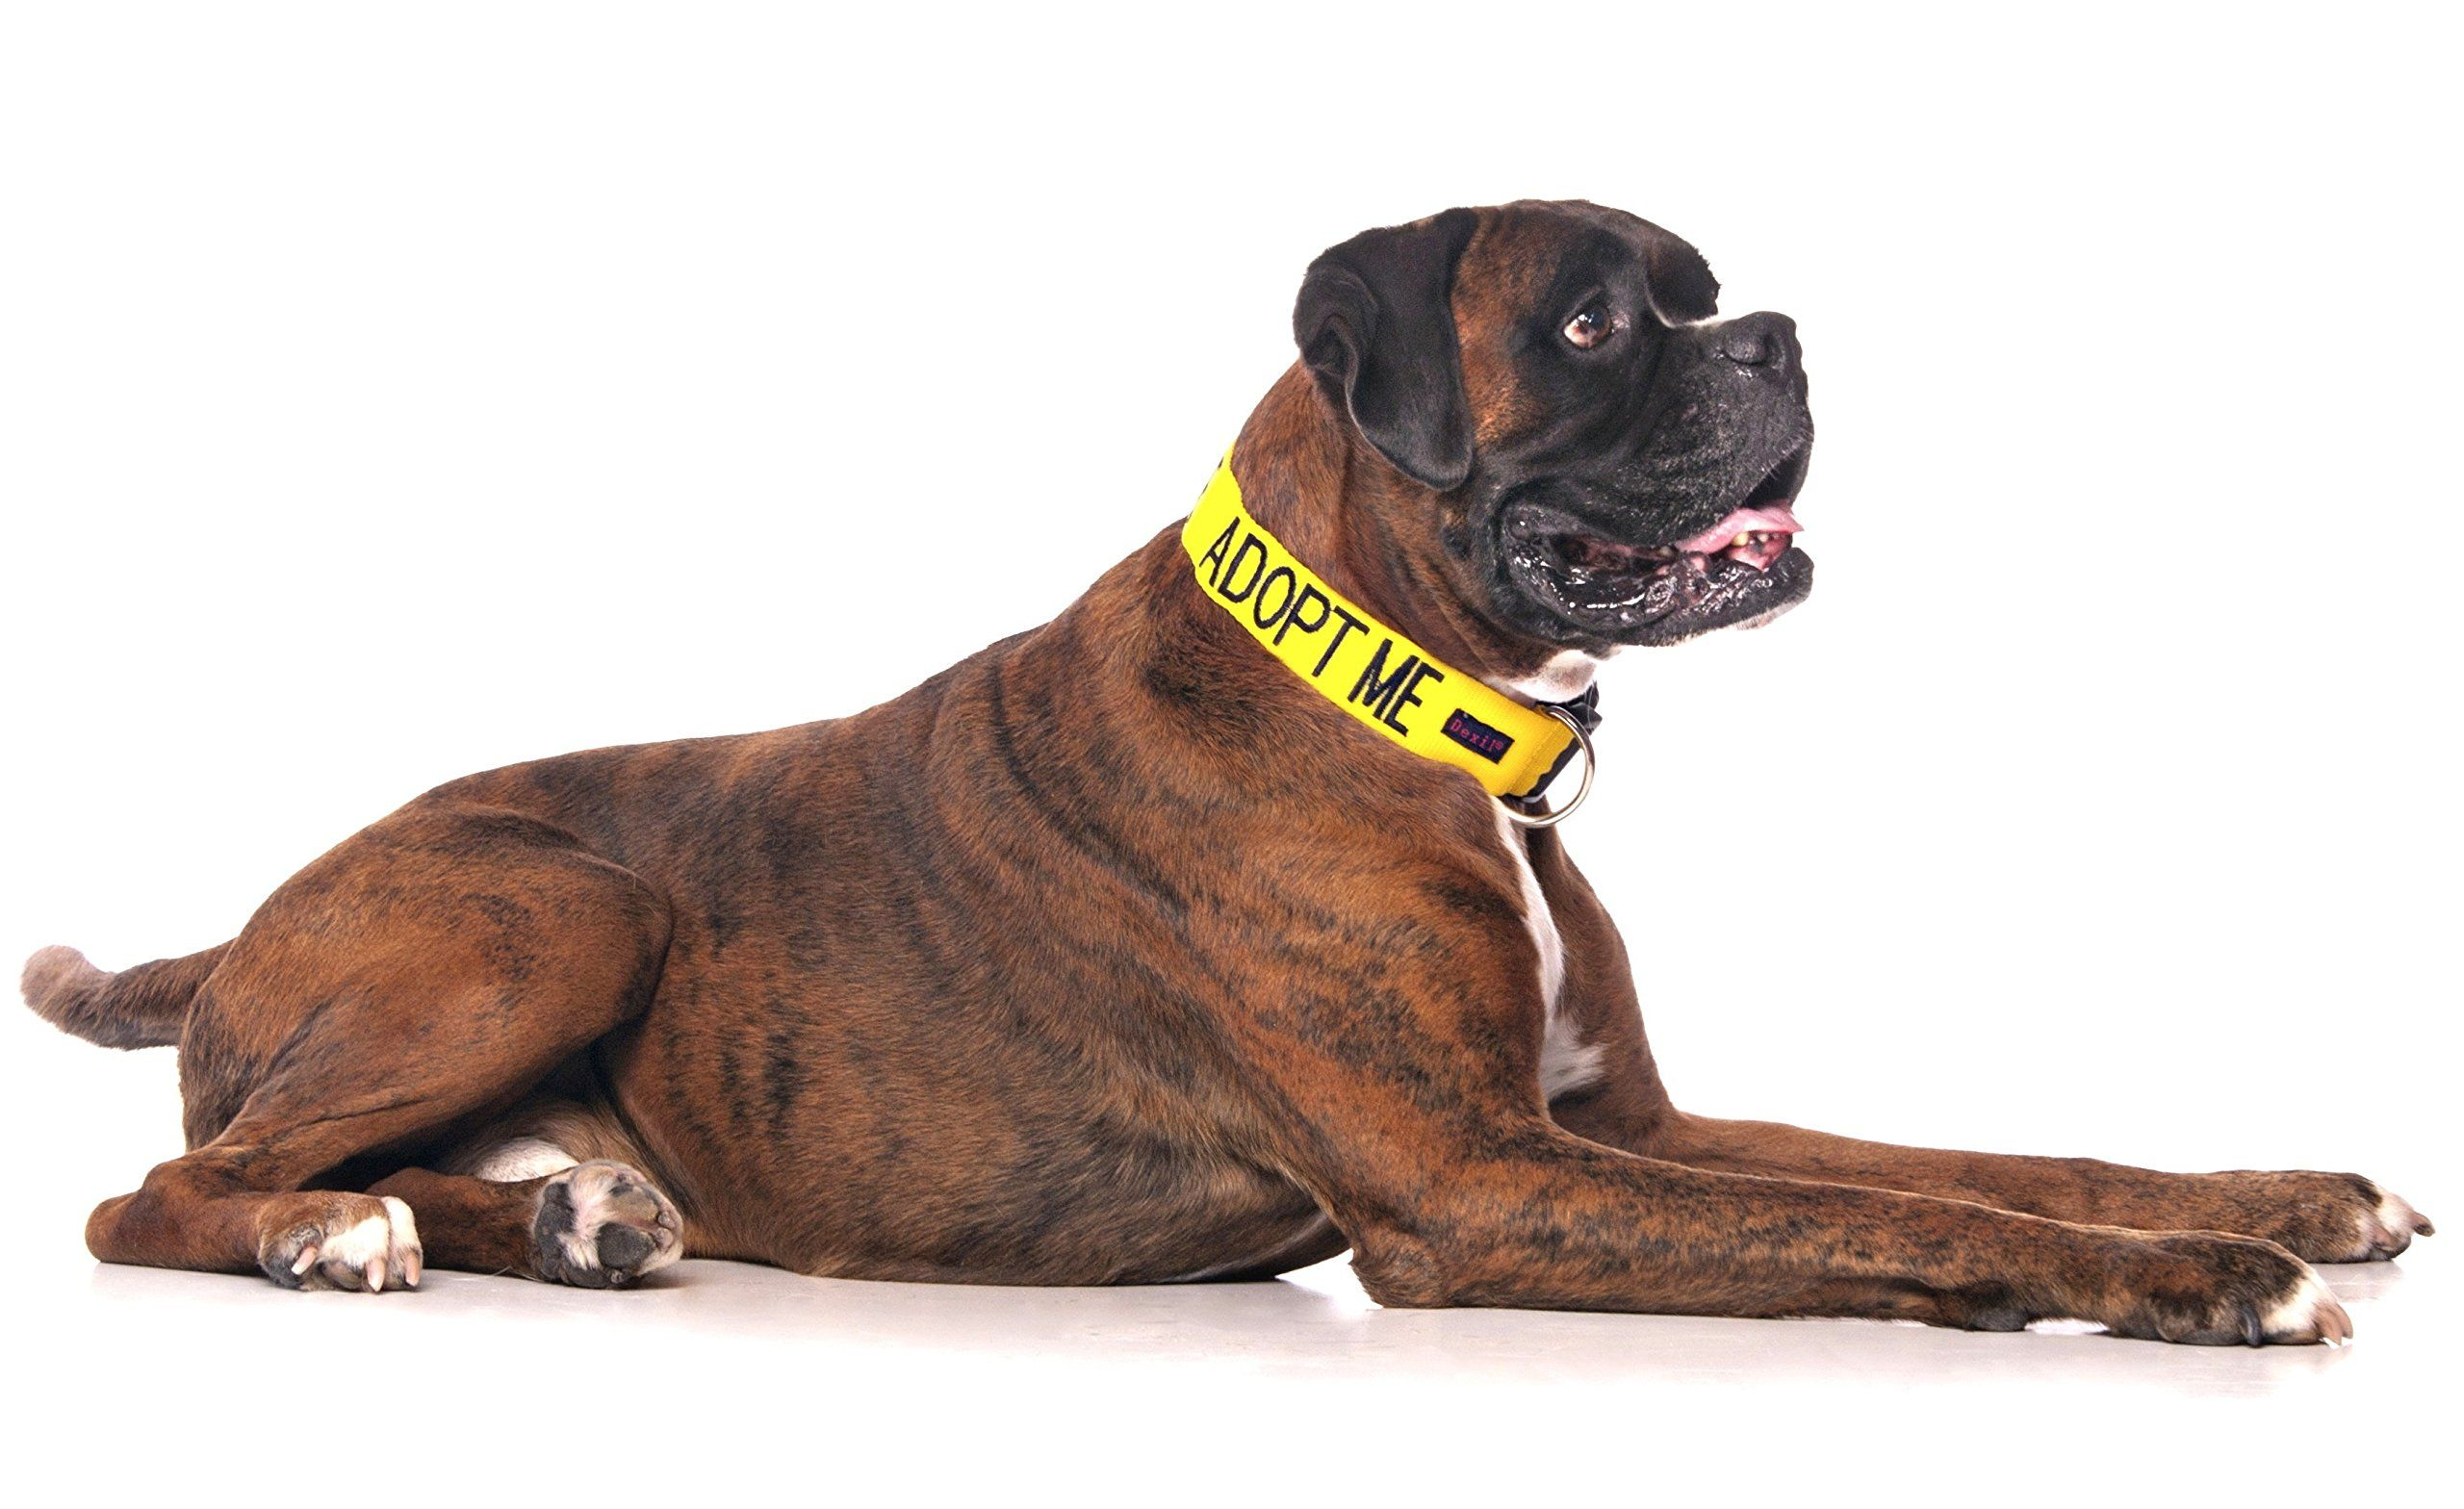 Adopt Me Yellow Color Coded Lxxl Semichoke Dog Collar Needs A Home Donate To Your Local Charity Check Out The Image By Visitin Dogs Local Charity Dog Collar